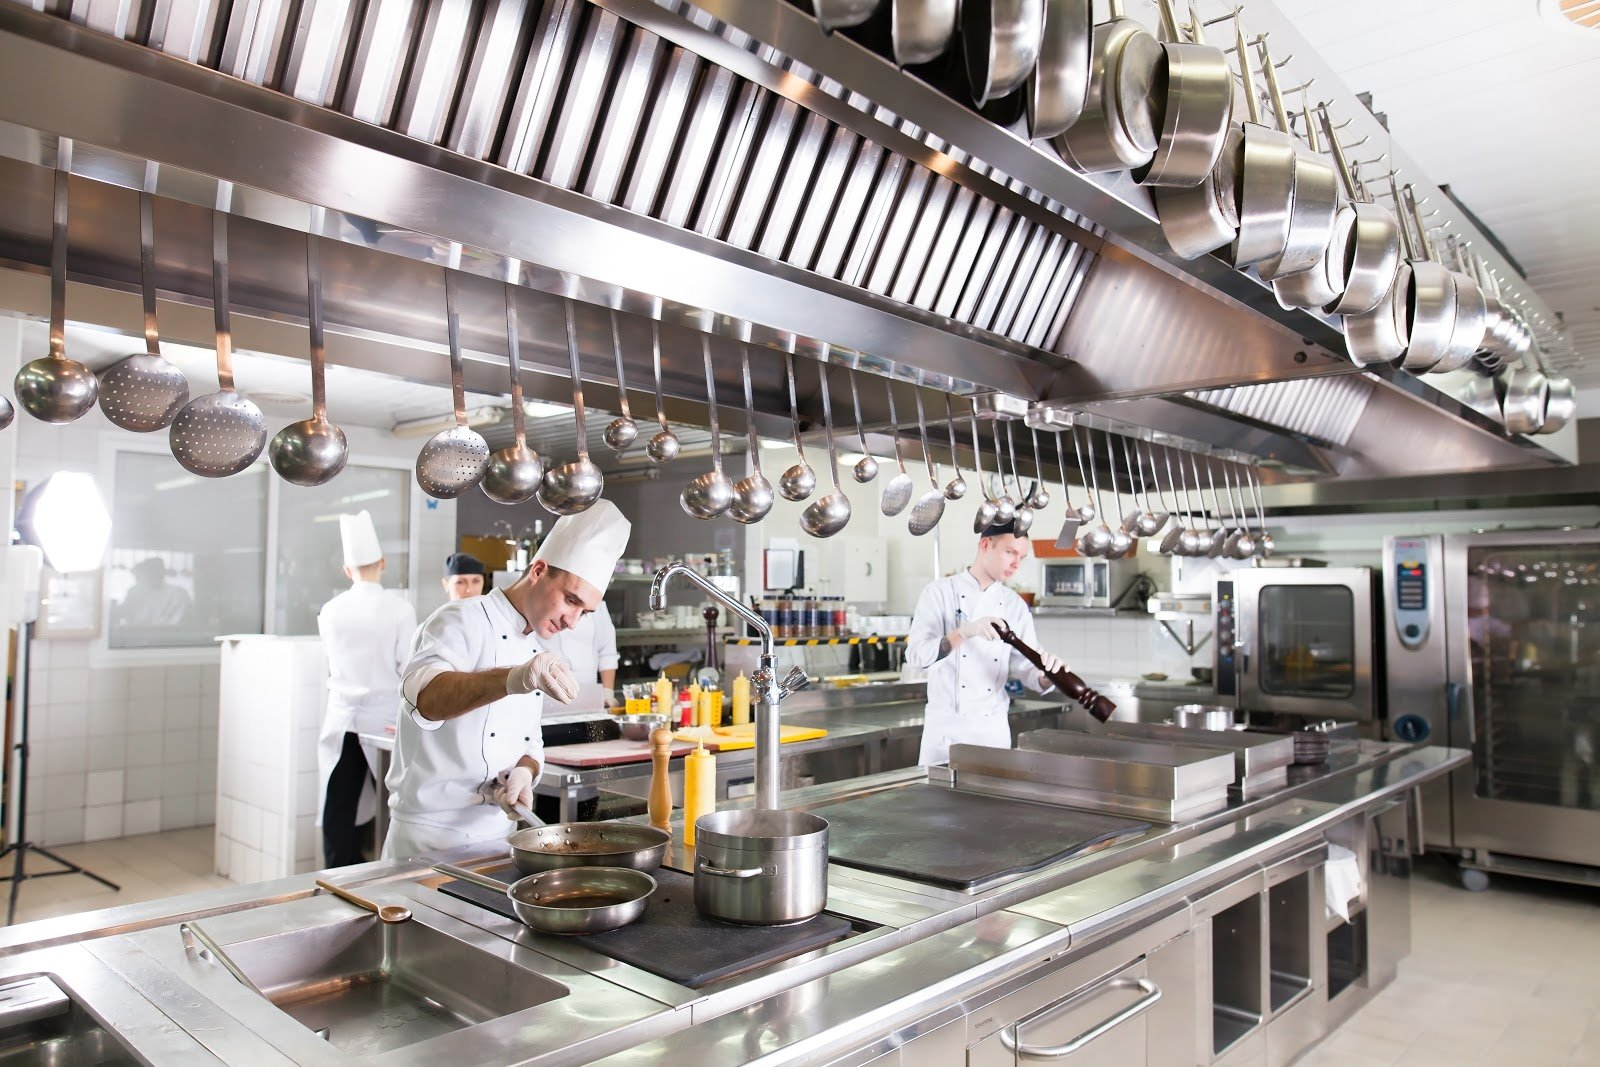 Chefs work at stations in kitchen